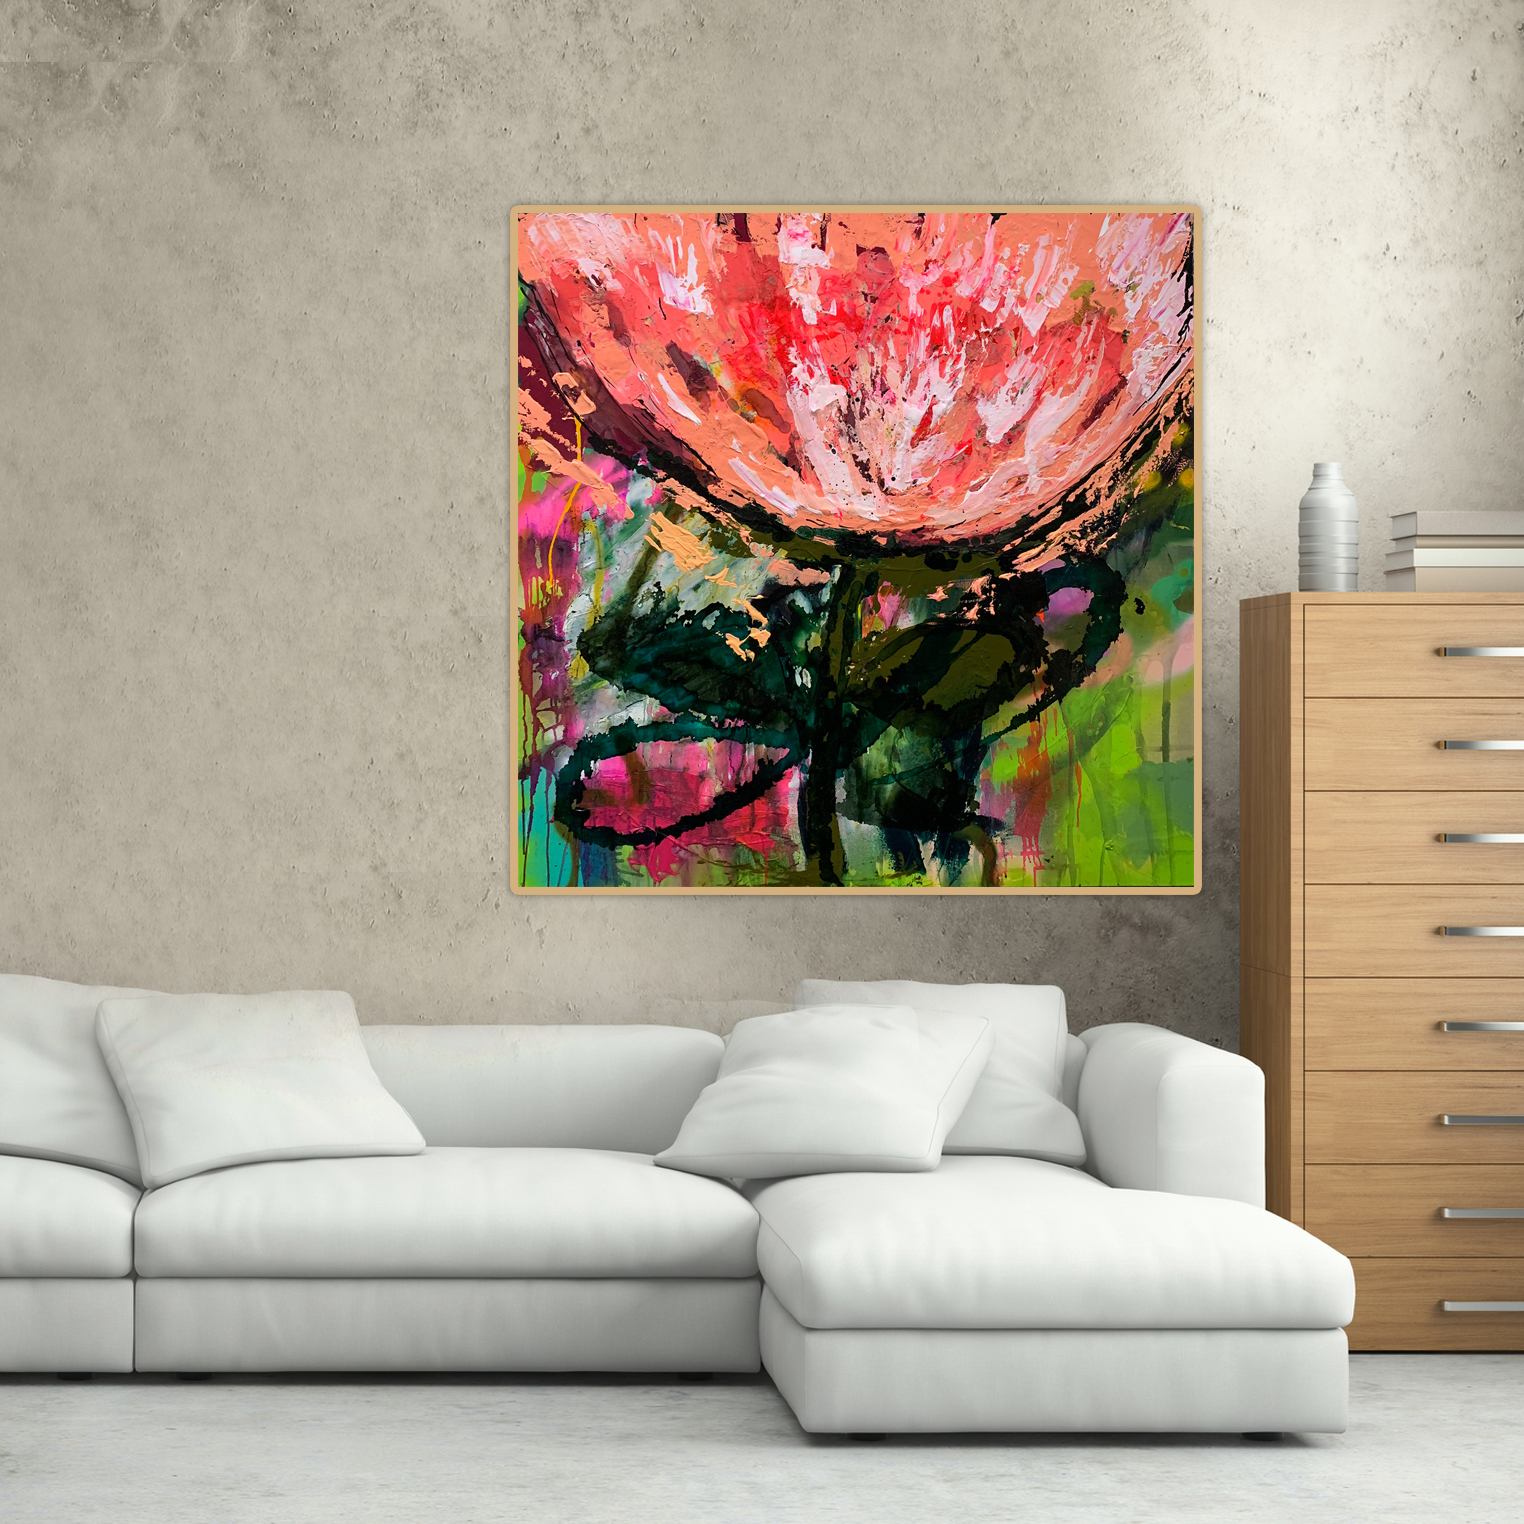 Abstract flower paintings for sale by artist Jessica Skye Baker